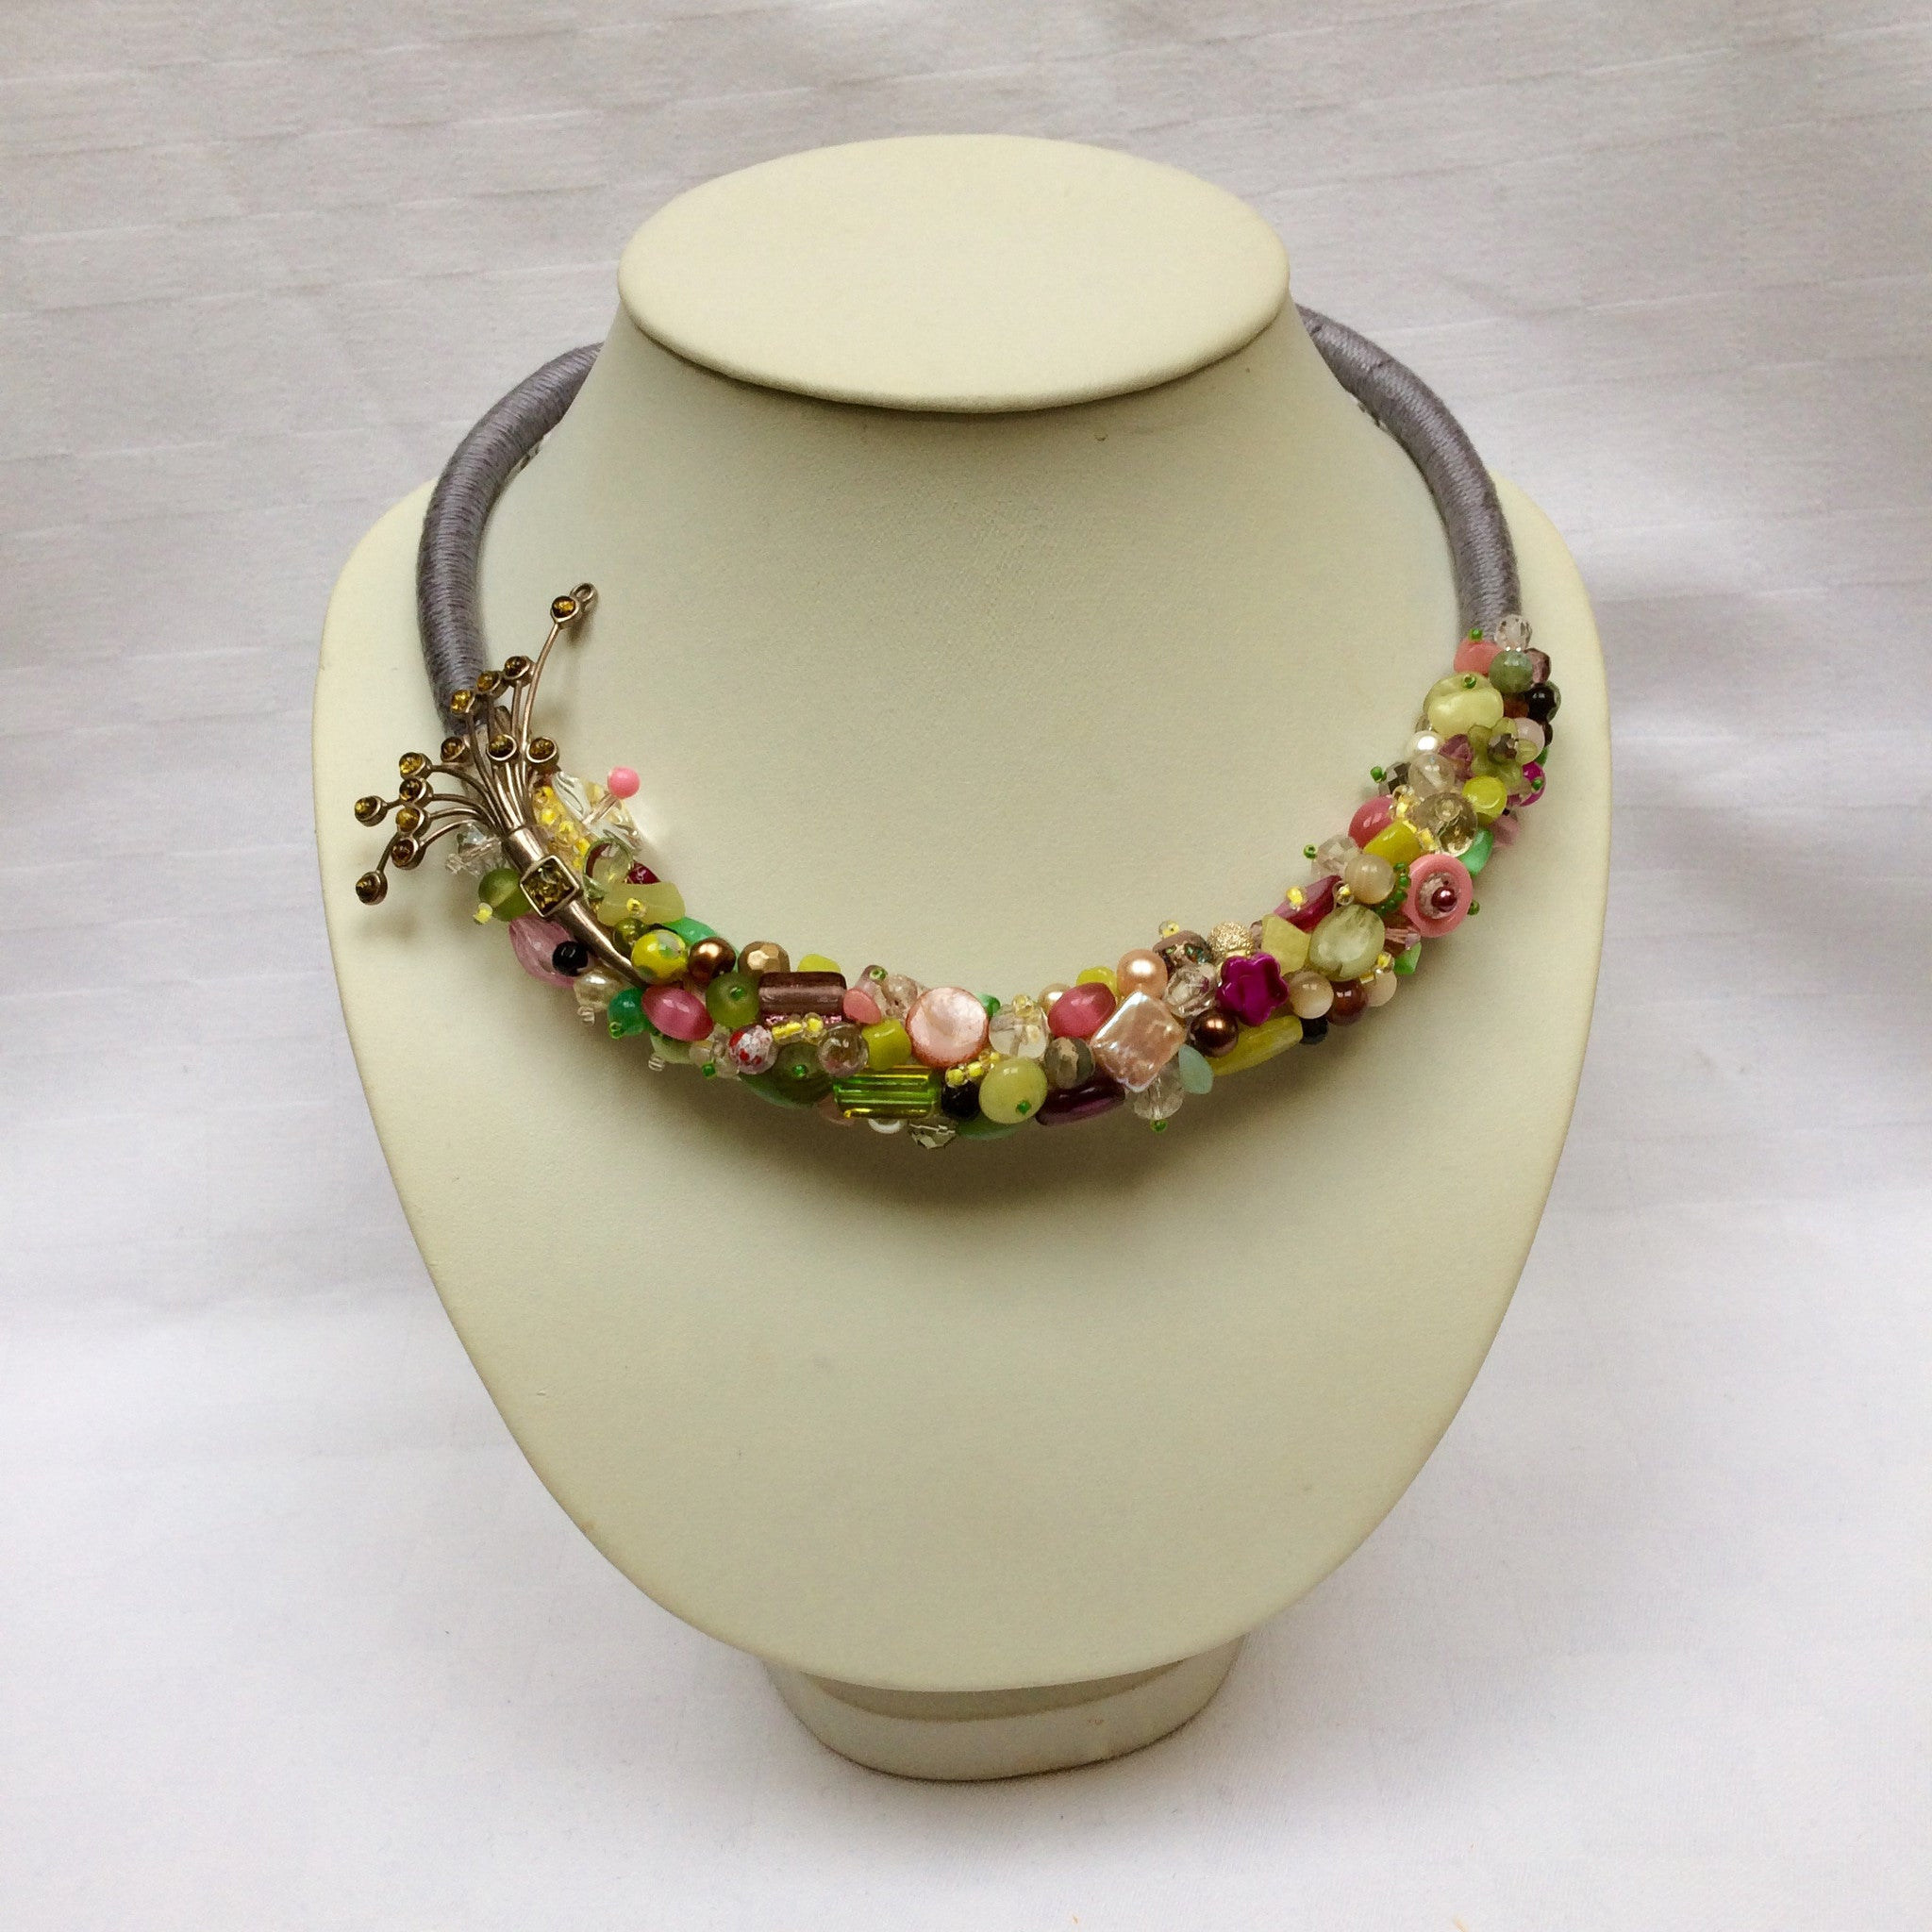 Spring Green Collar necklace